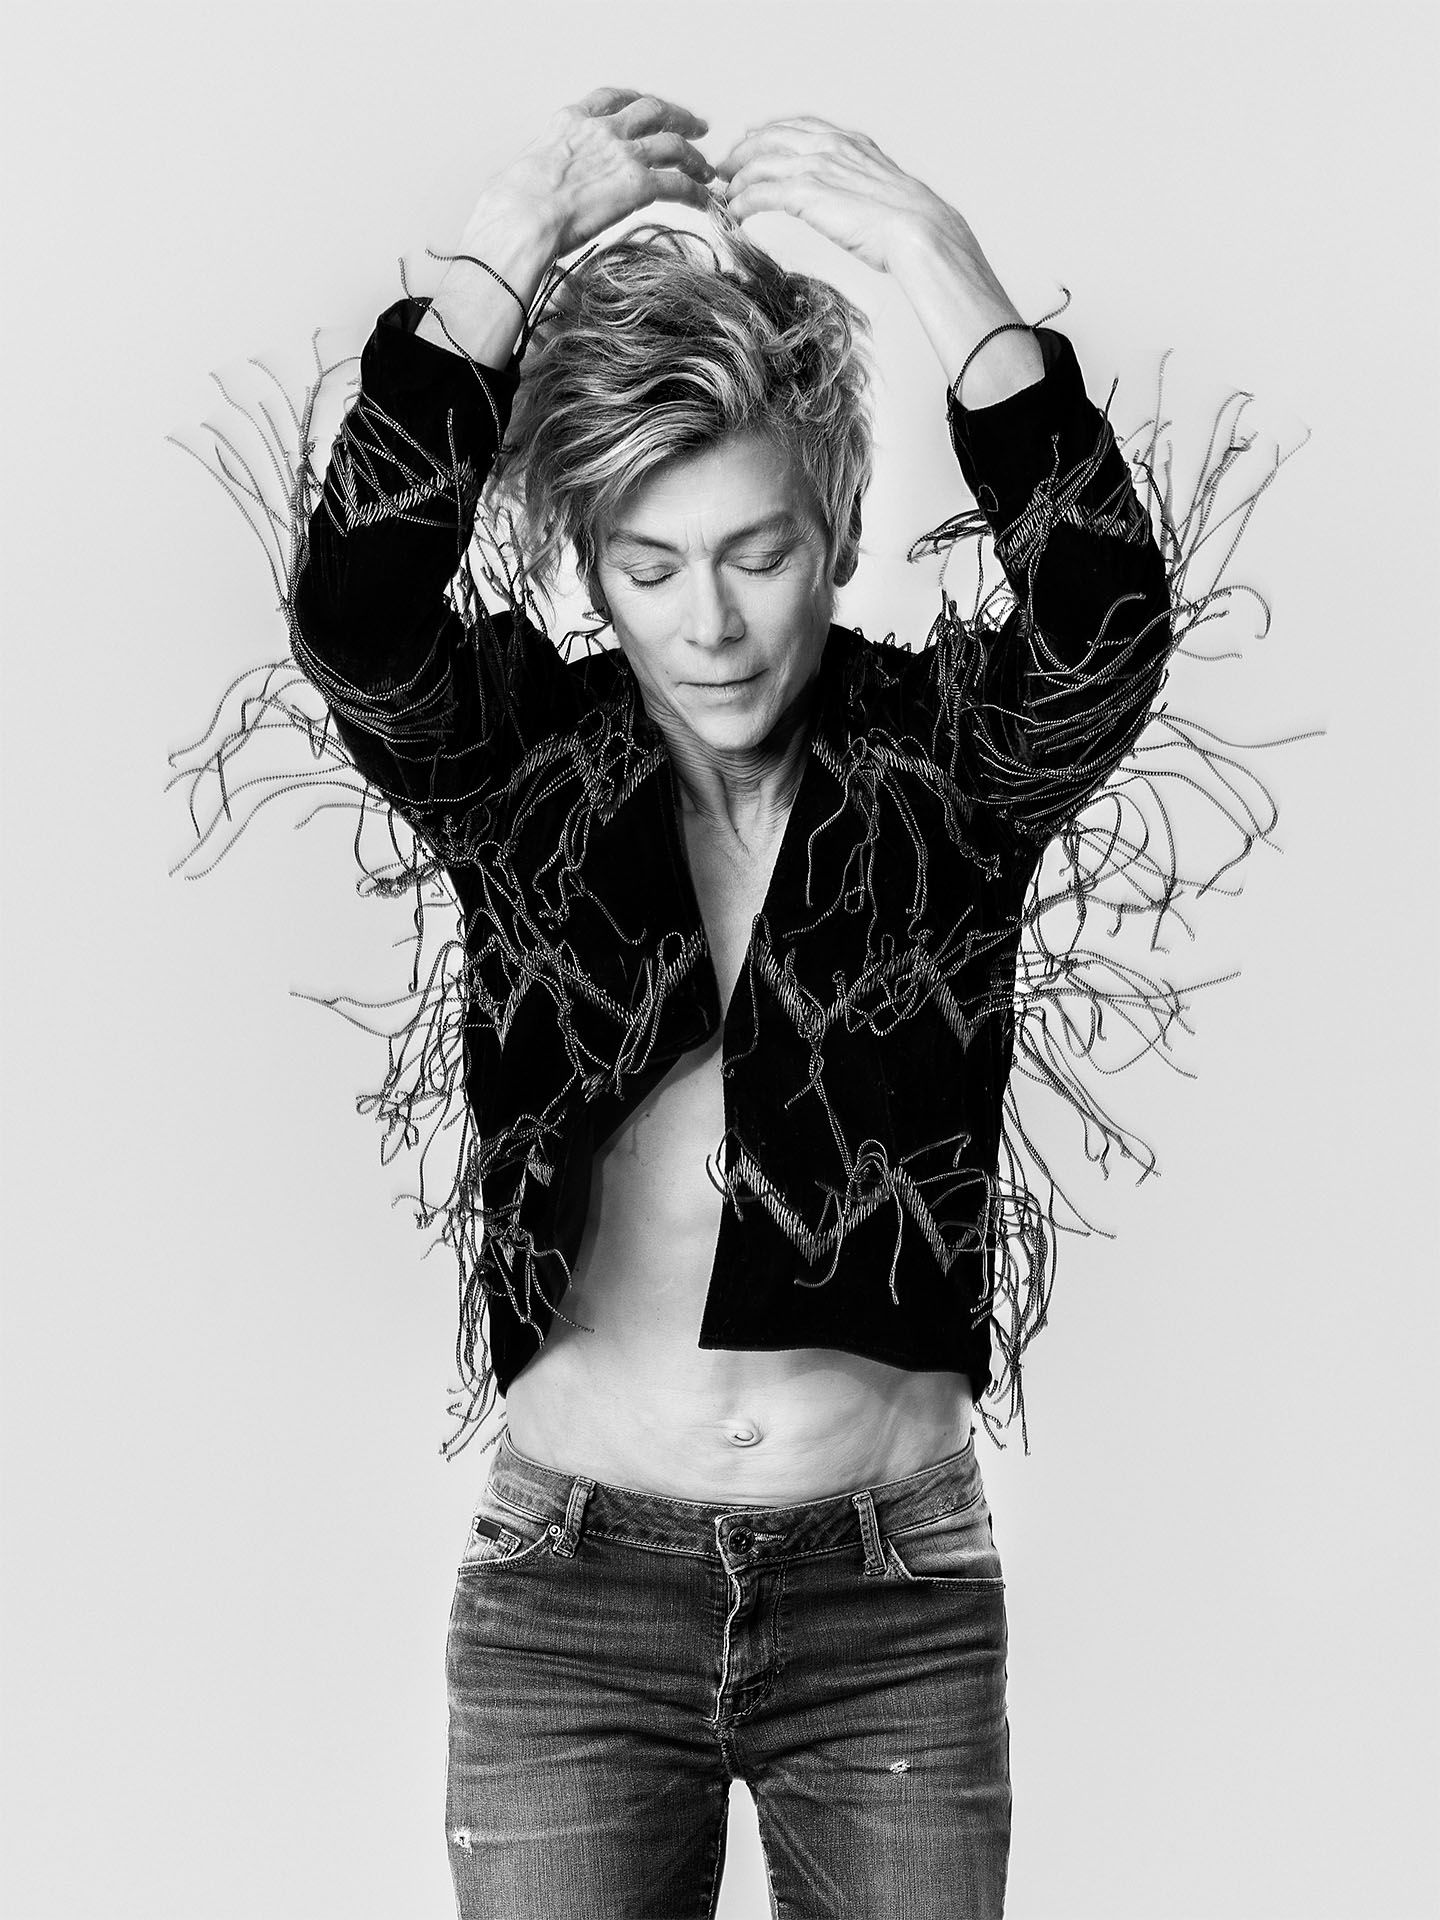 portrait black and white of Louise Lecavalier jumping up wearing fringed vest eyes closed by Jocelyn Michel for Voir